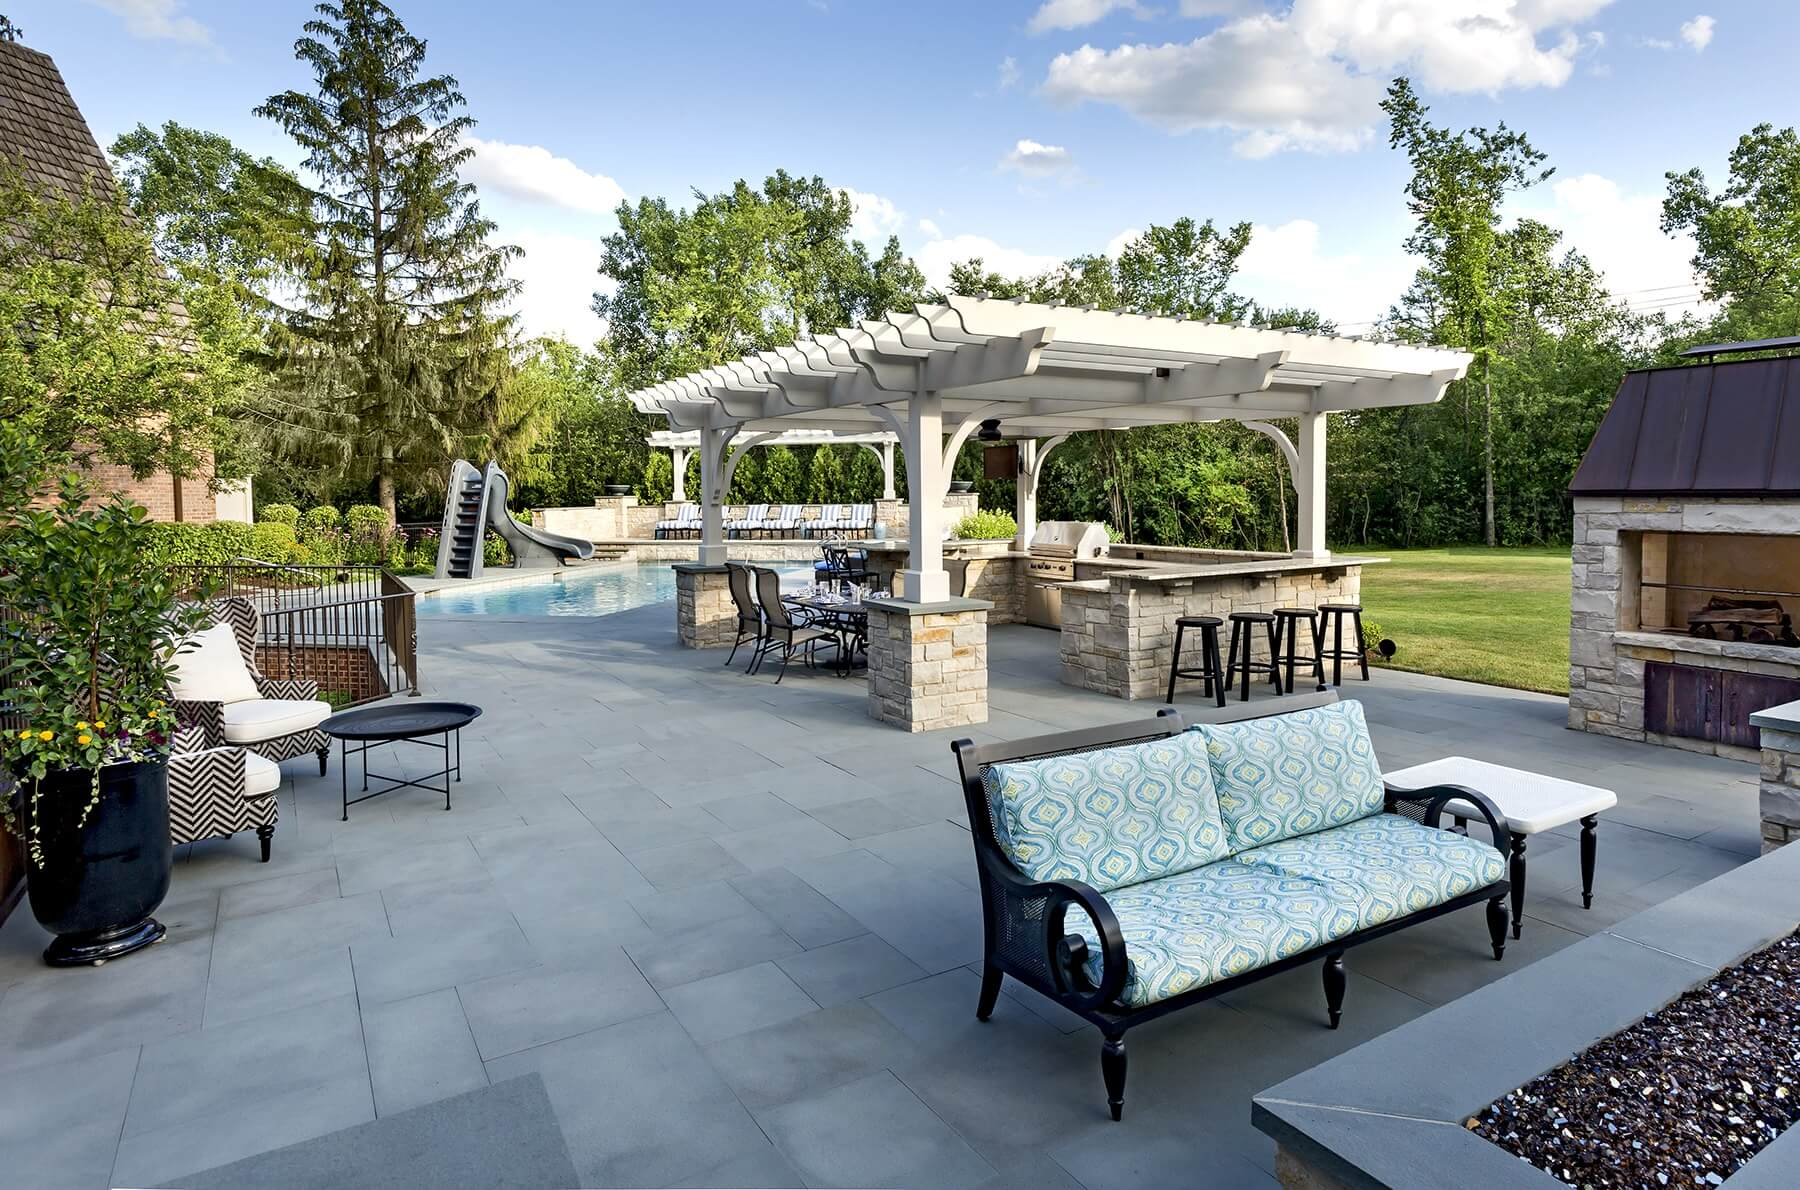 out door kitchen delta faucet spray head patio outdoor pergola ipe deck northbrook il a backyard with the wow factor